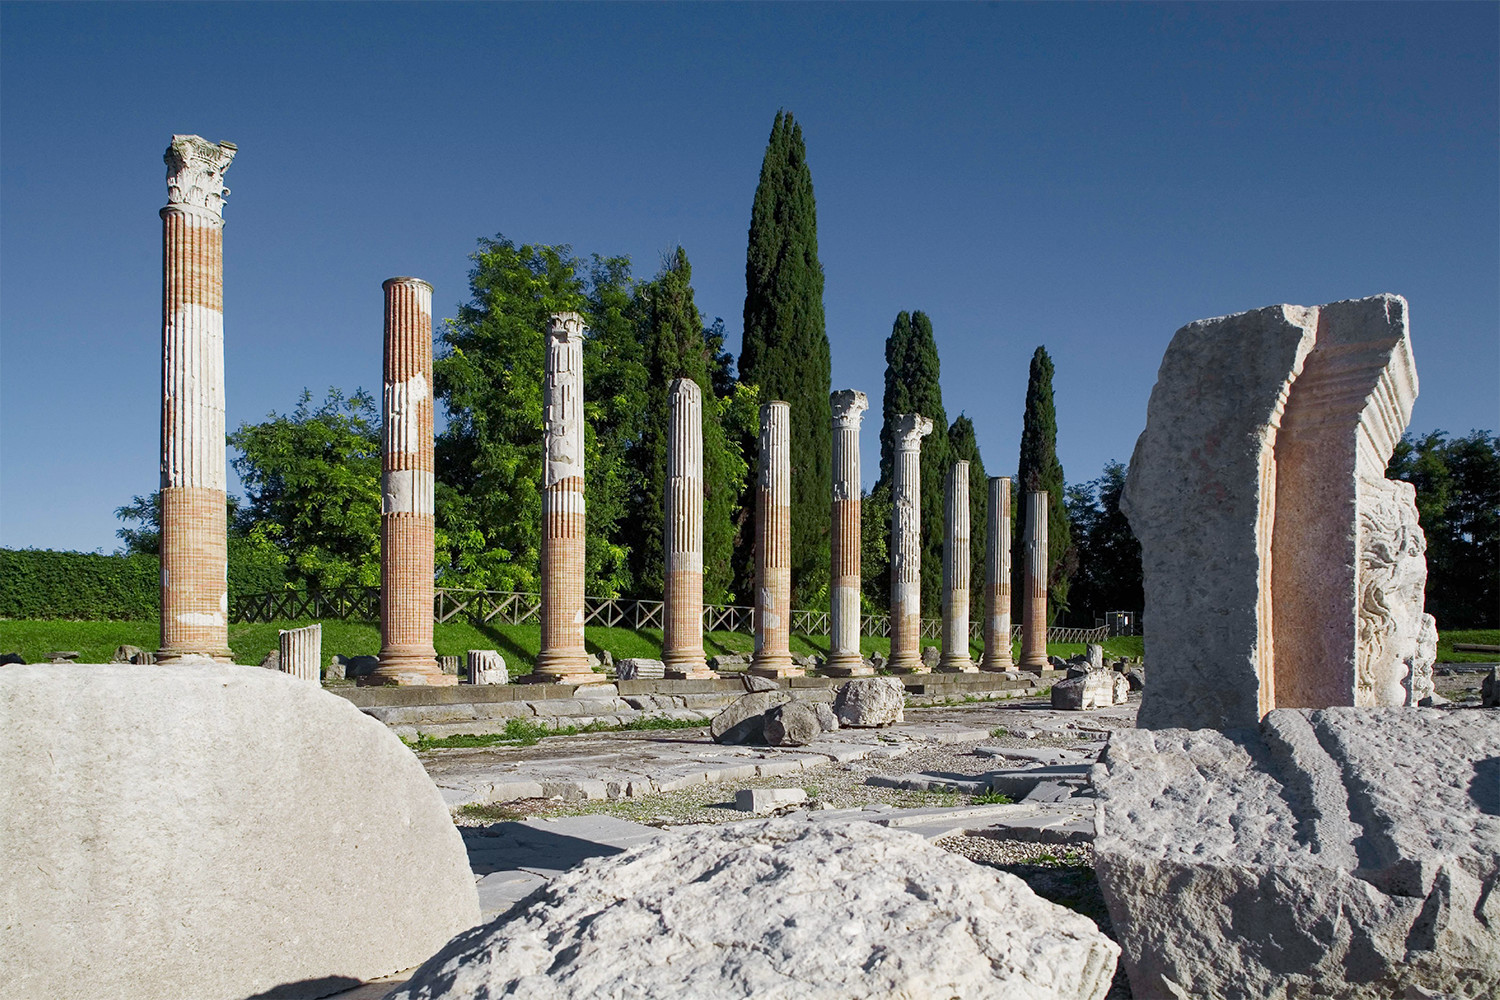 Foro romano di Aquileia,<br>photo by Matteo Lavazza Seranto